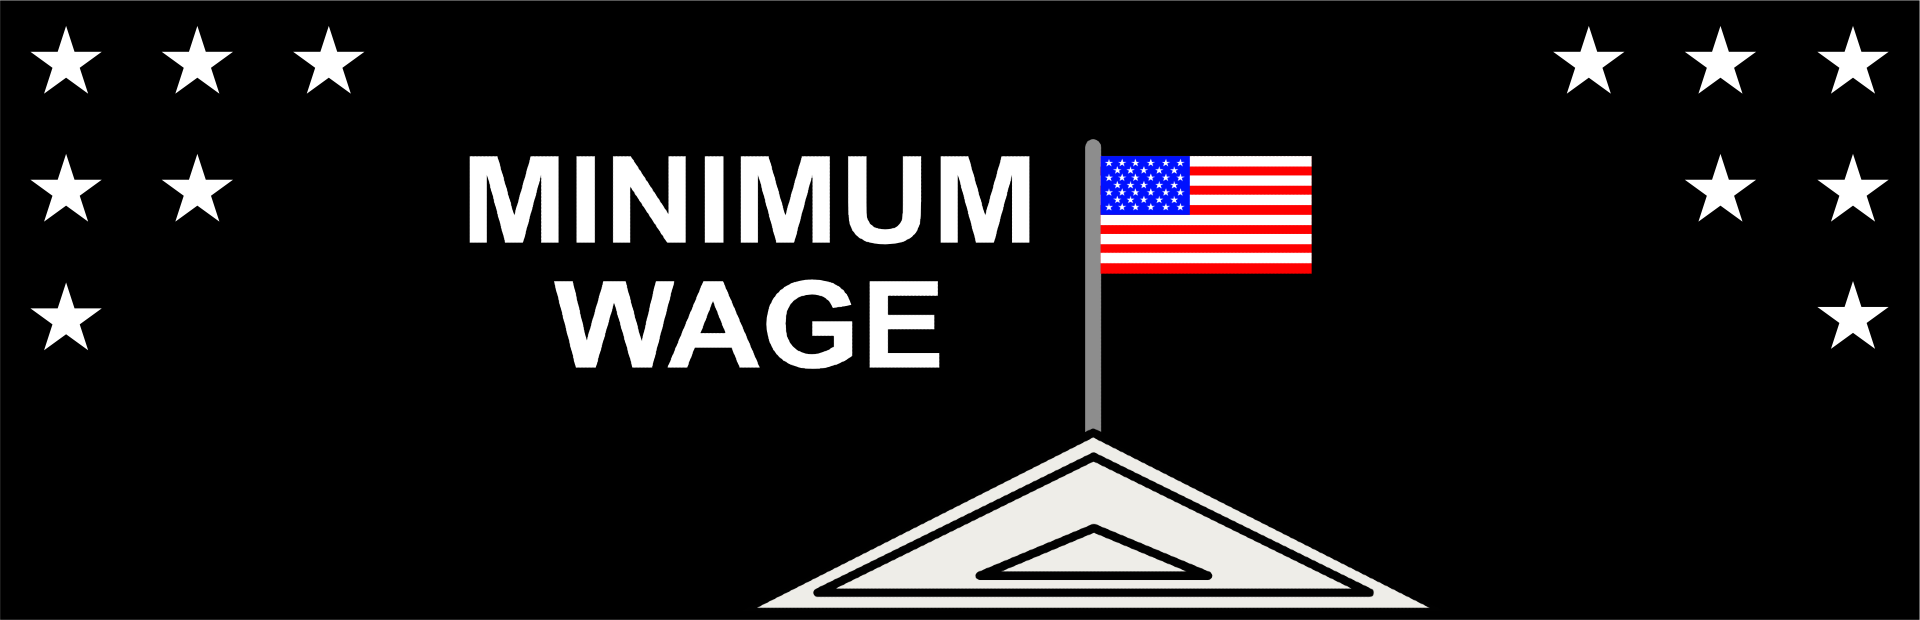 Minimum Wage: Influence The Election